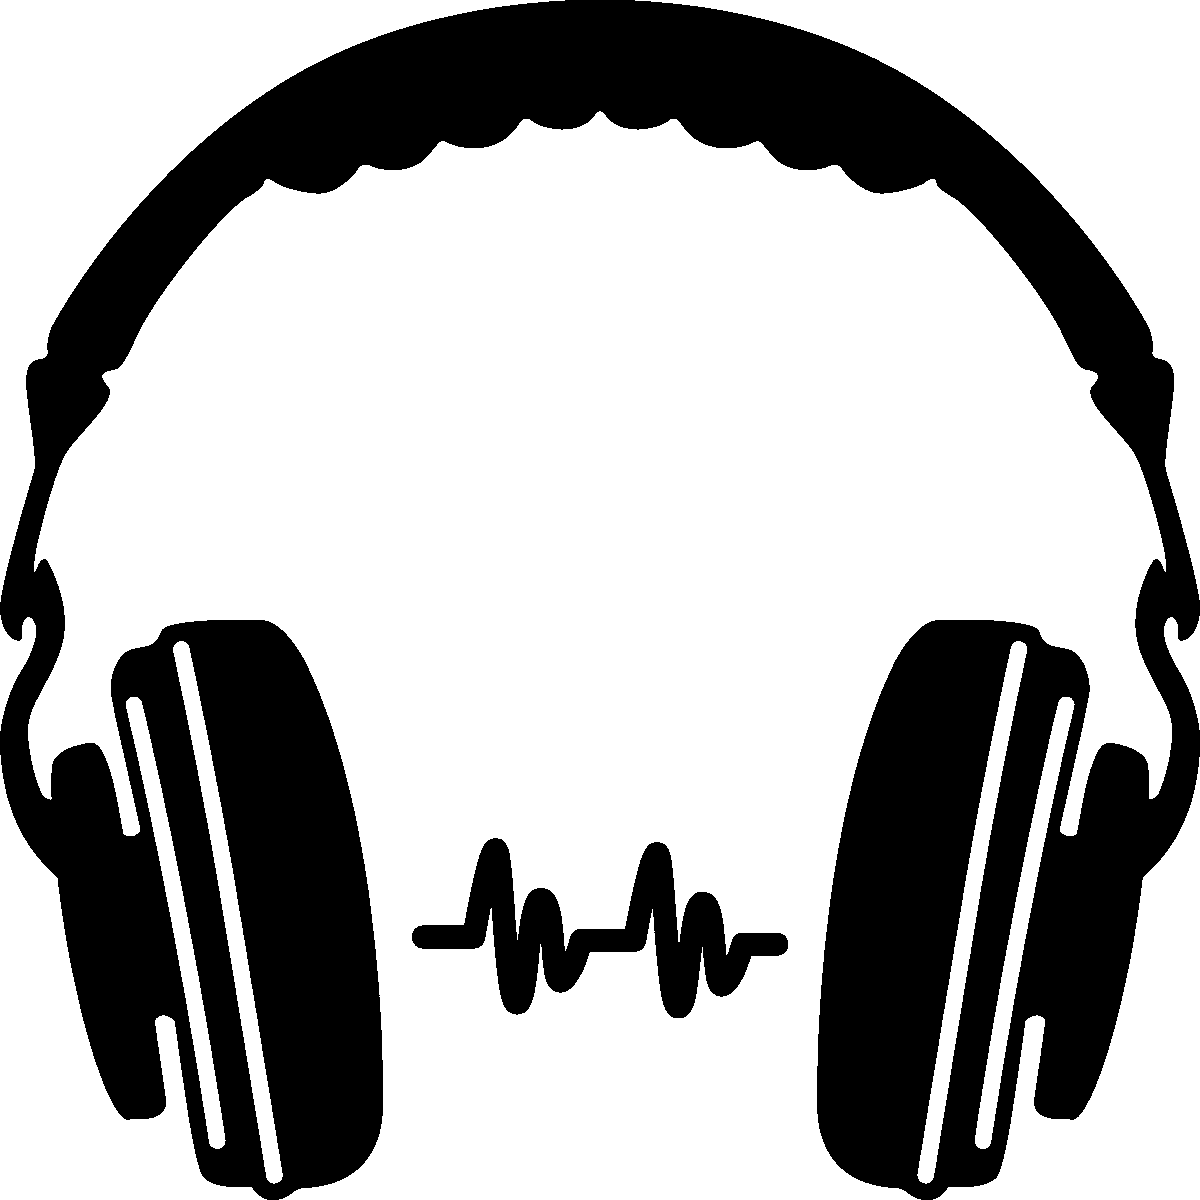 disco vector headphone png